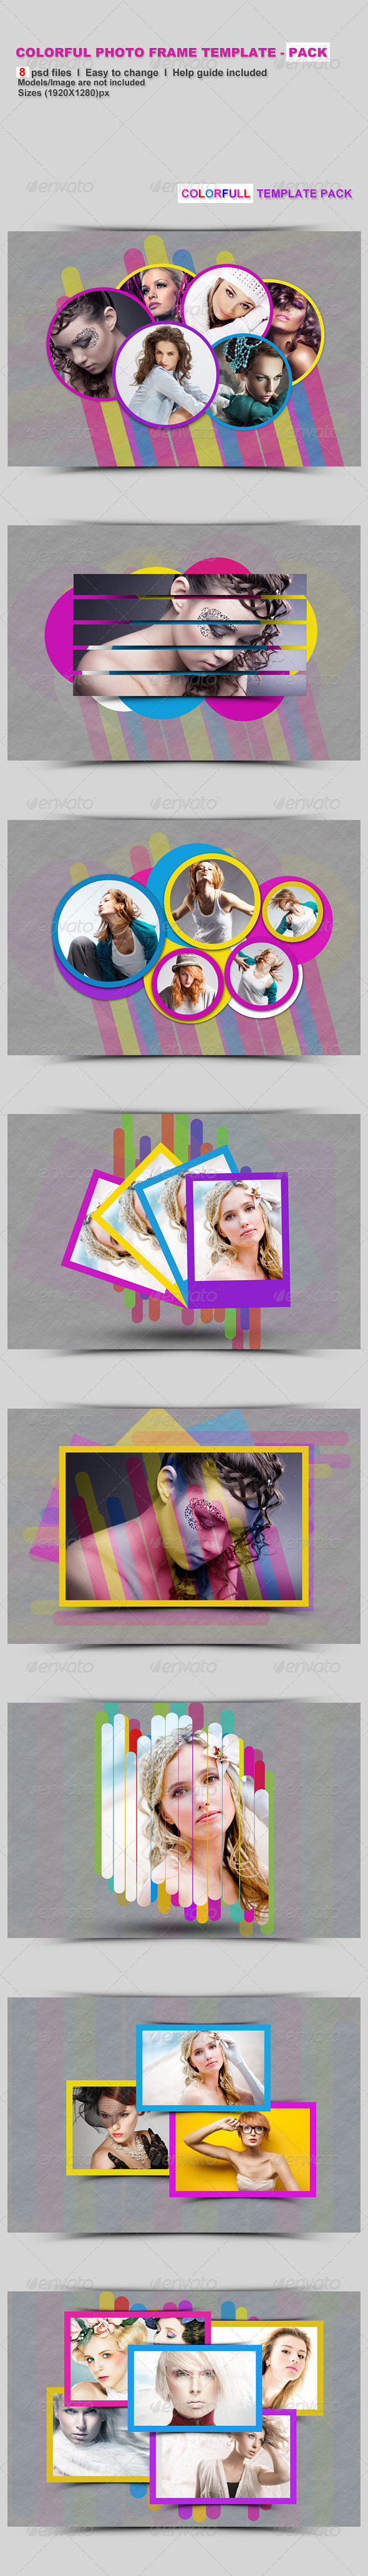 Colorful Photo Frame Template - Pack - Photo Templates Graphics